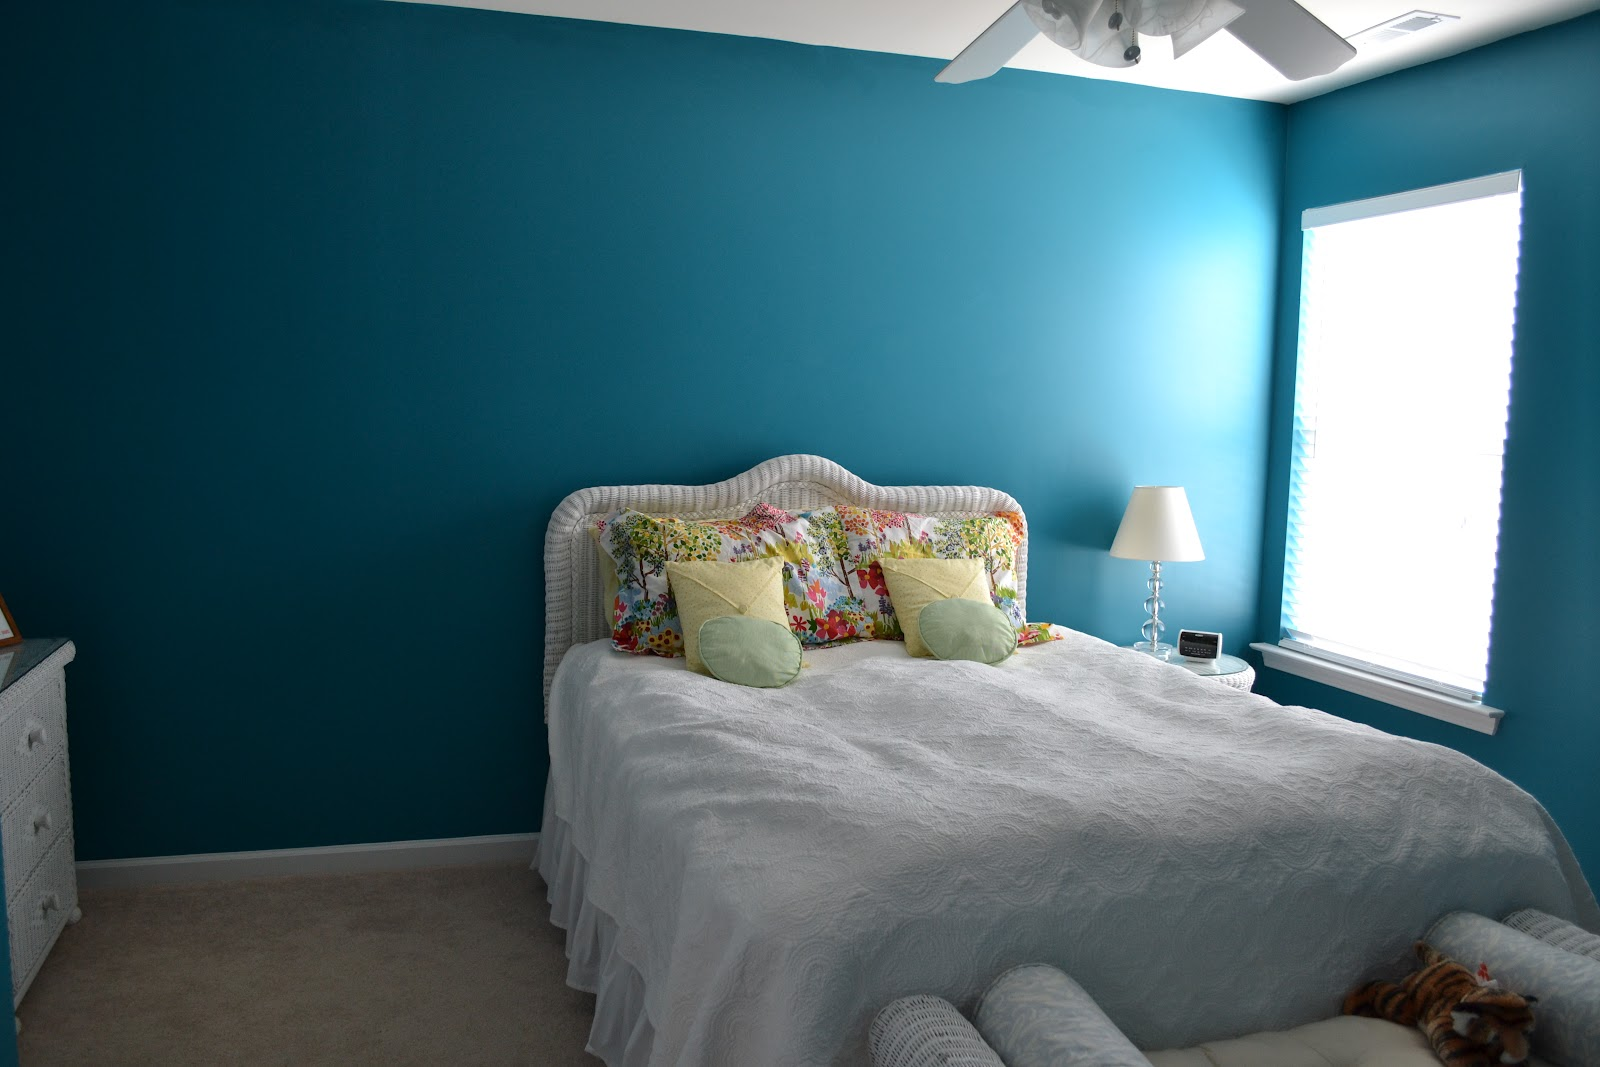 Go Bold   Painting the Guest Room. Go Bold   Painting the Guest Room   LaForce Be With You